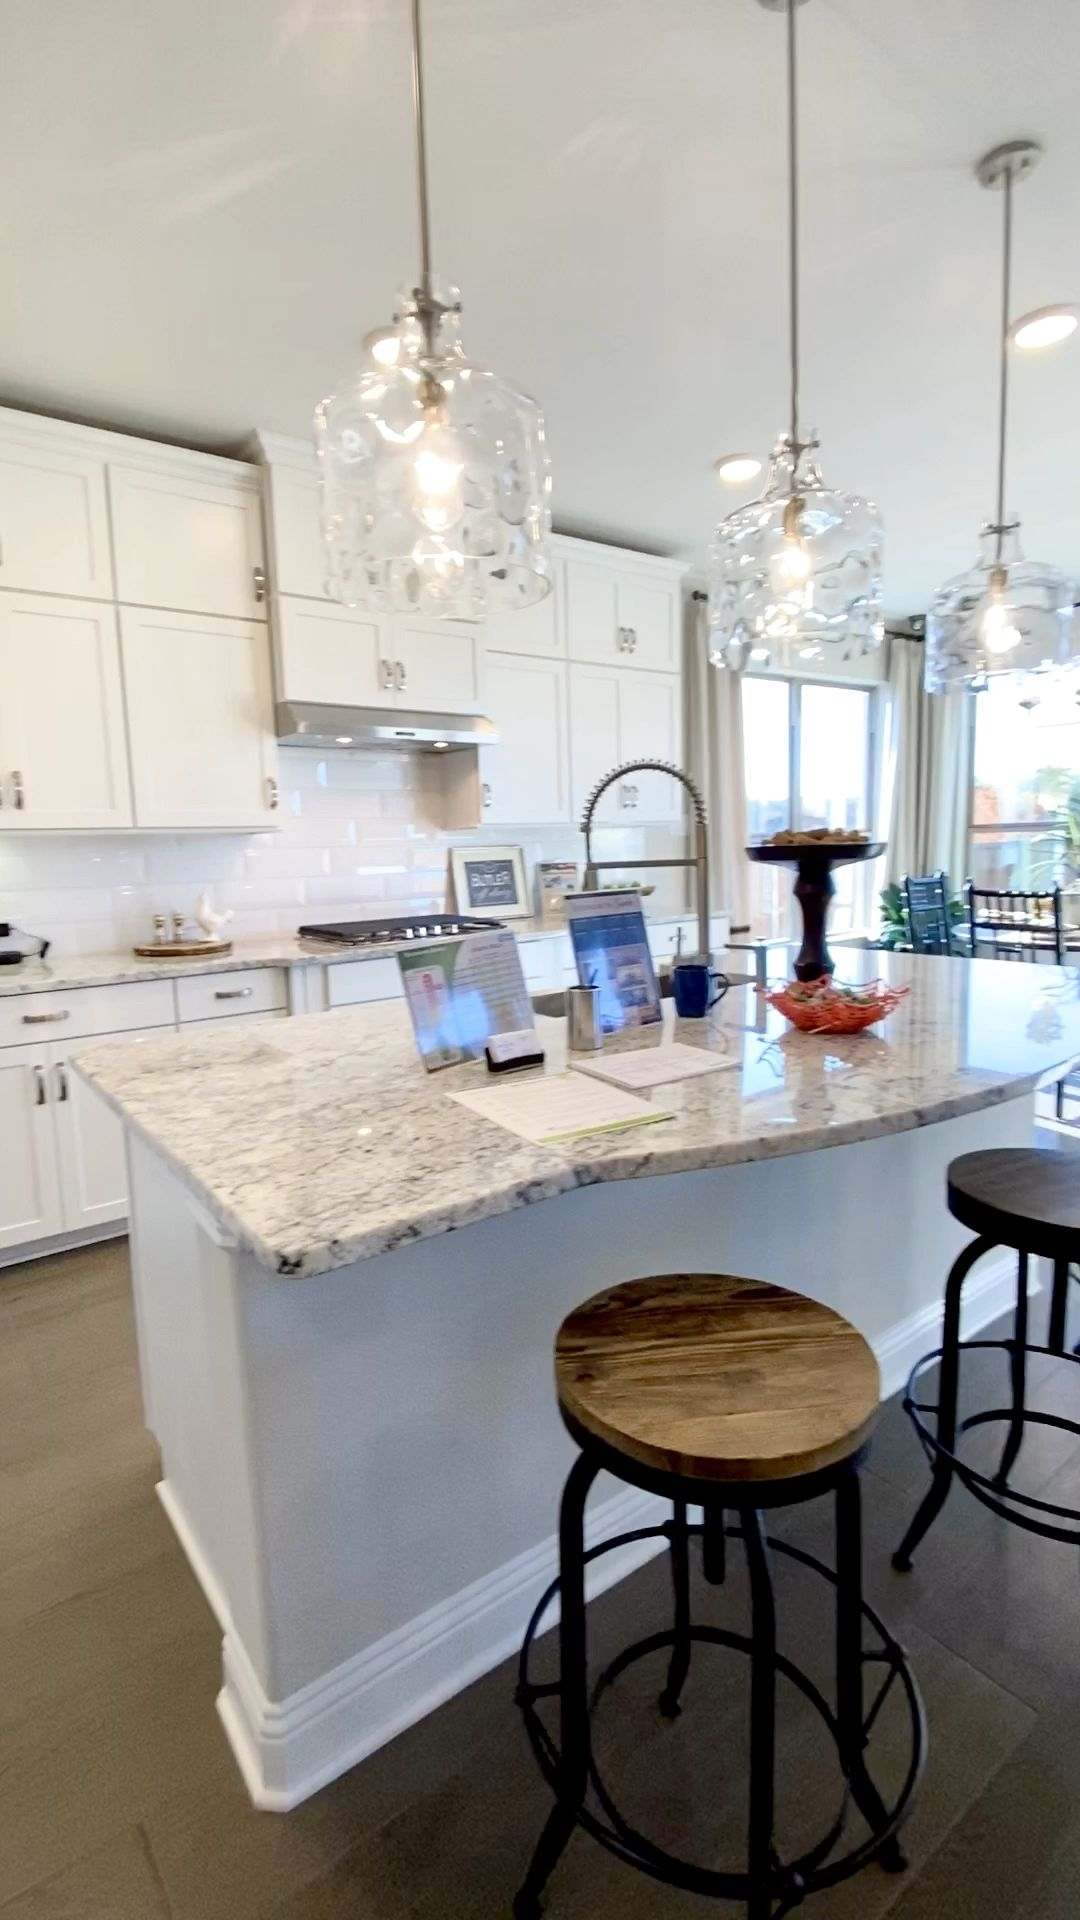 White kitchen cabinets and open concept floorplan